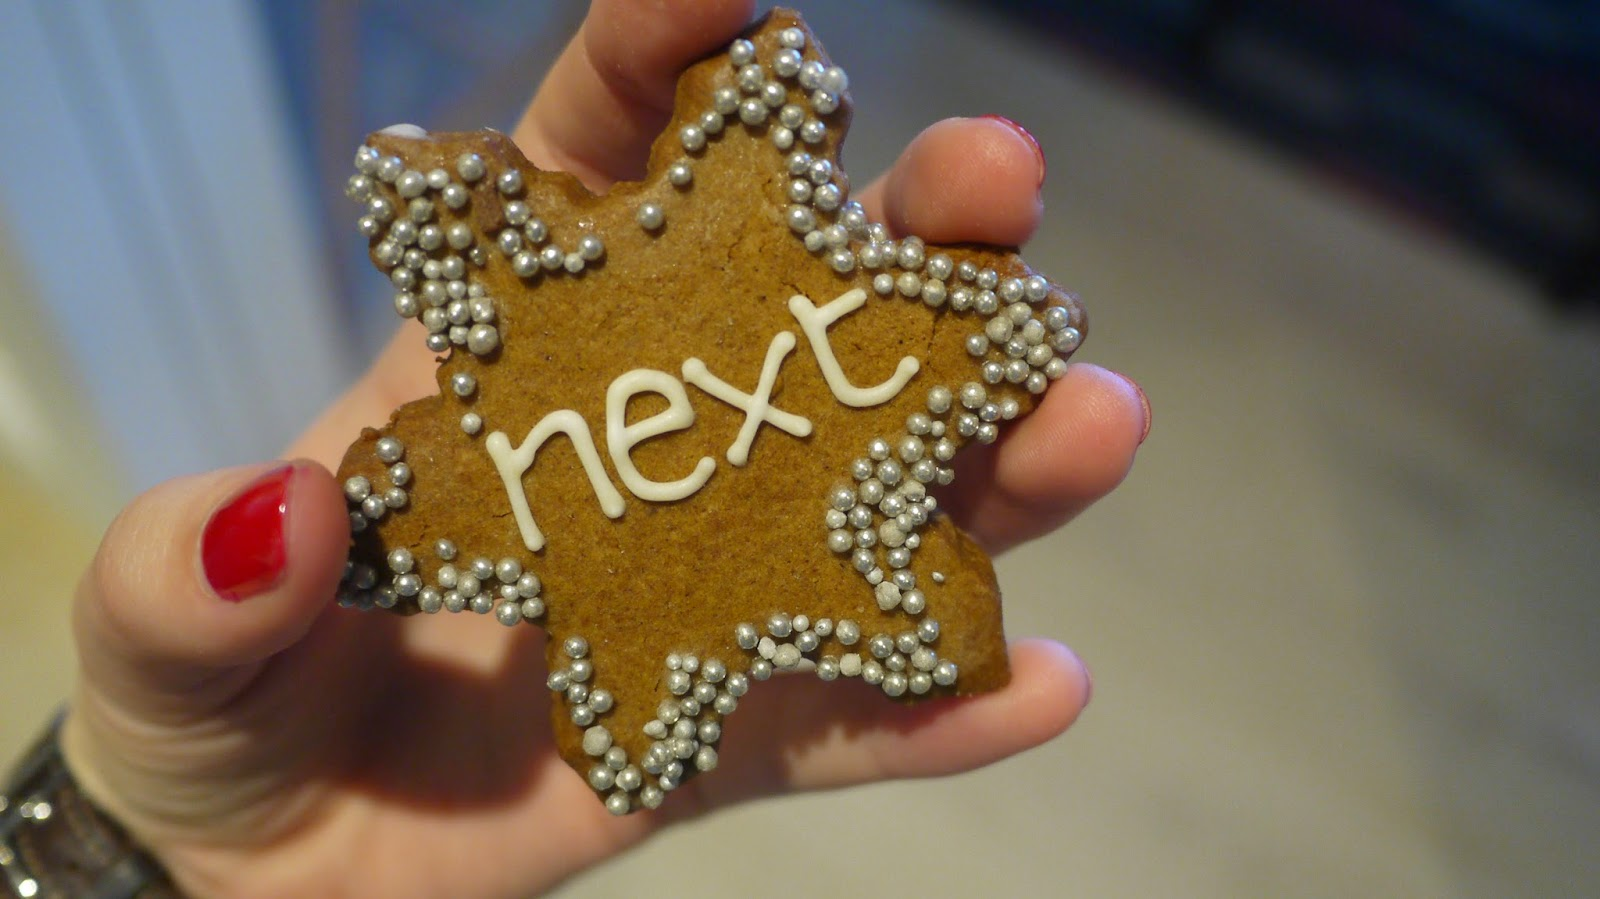 Next press day cookies